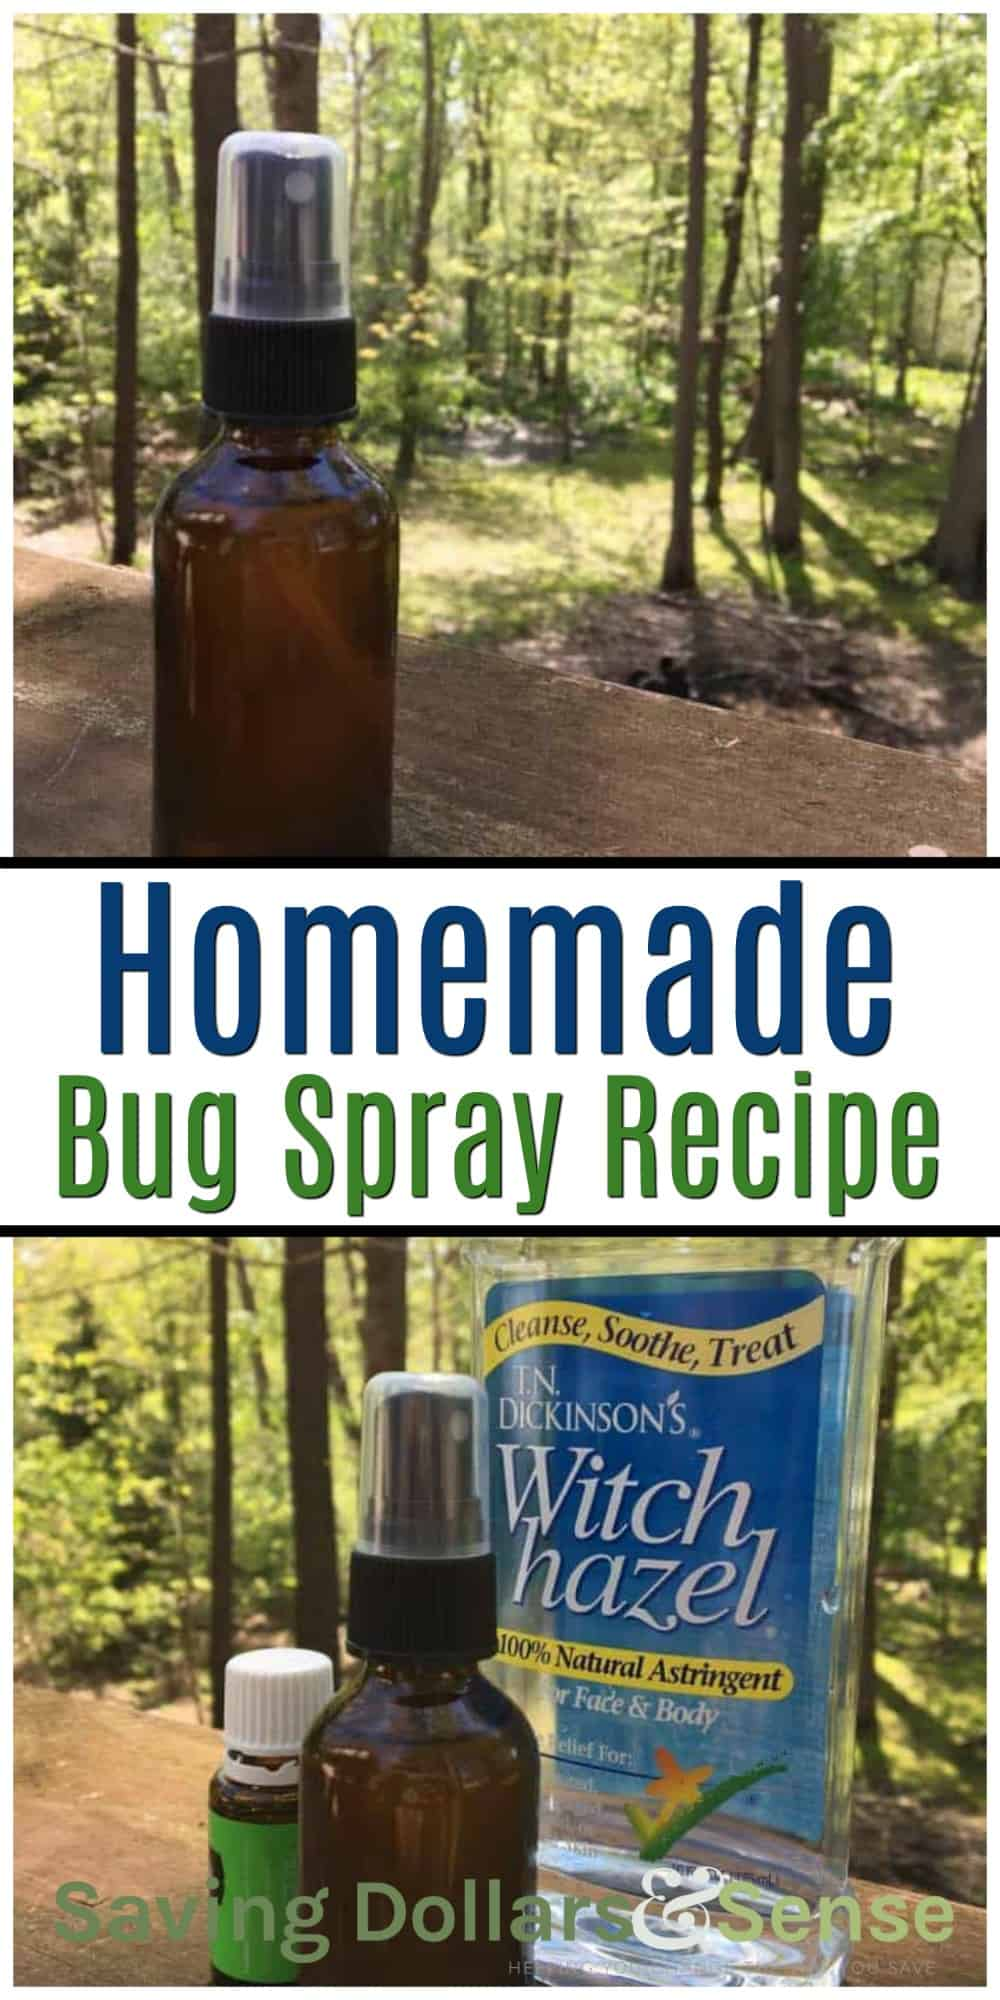 Citronella Bug Spray Recipe - Saving Dollars & Sense